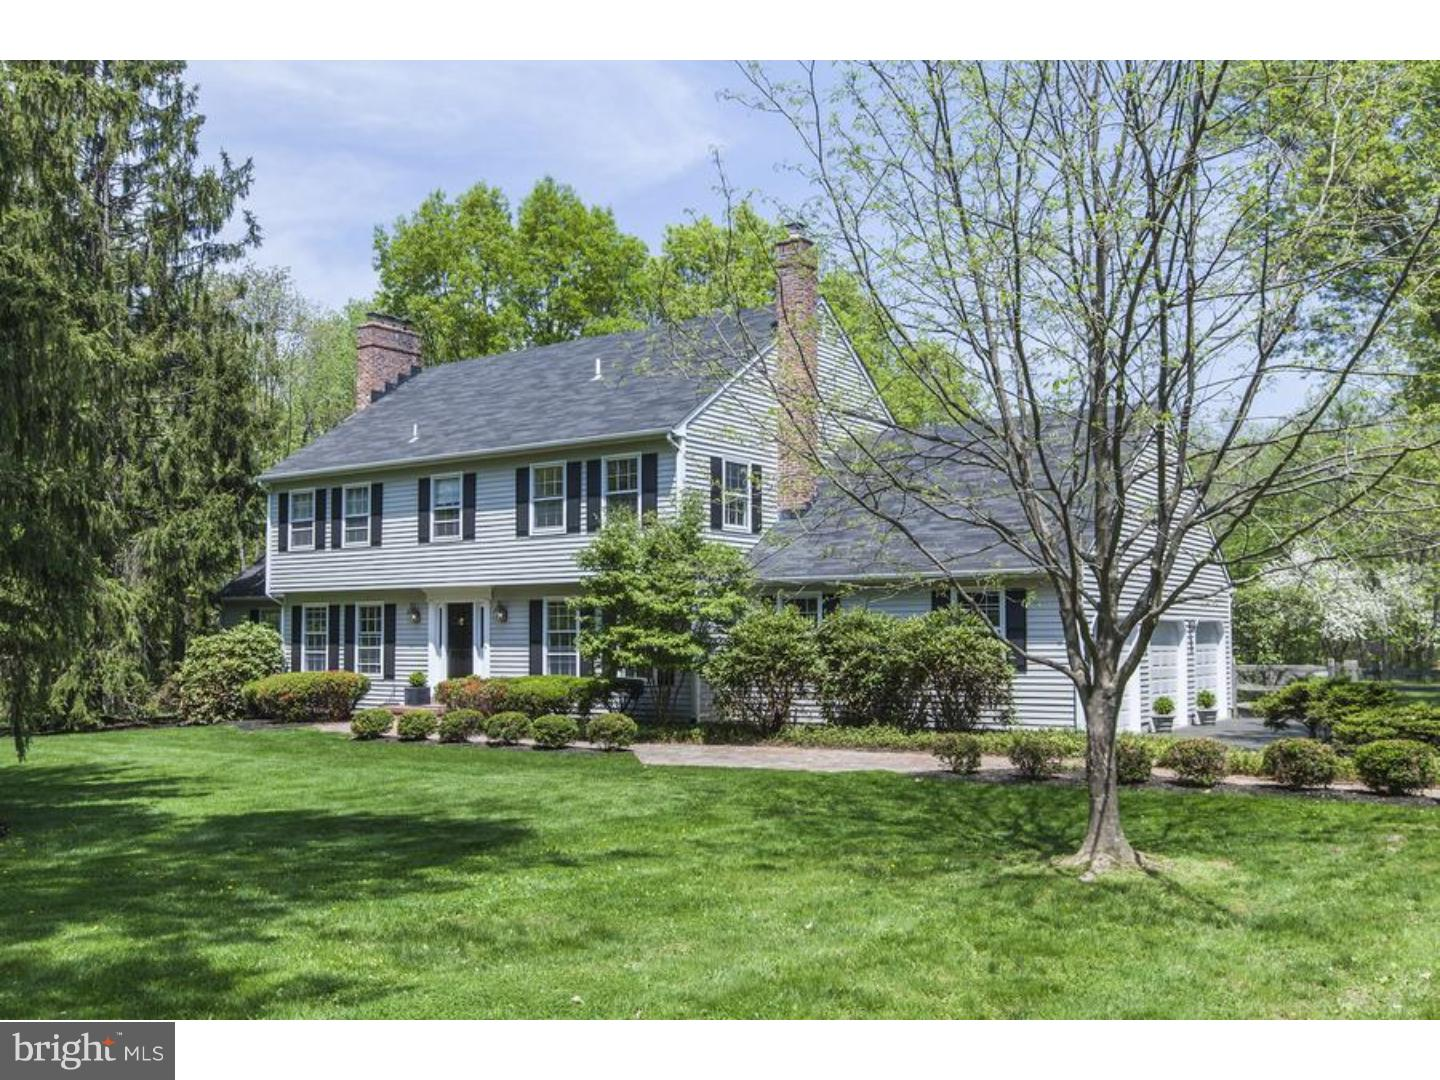 79 W SHORE DRIVE, PENNINGTON, NJ 08534